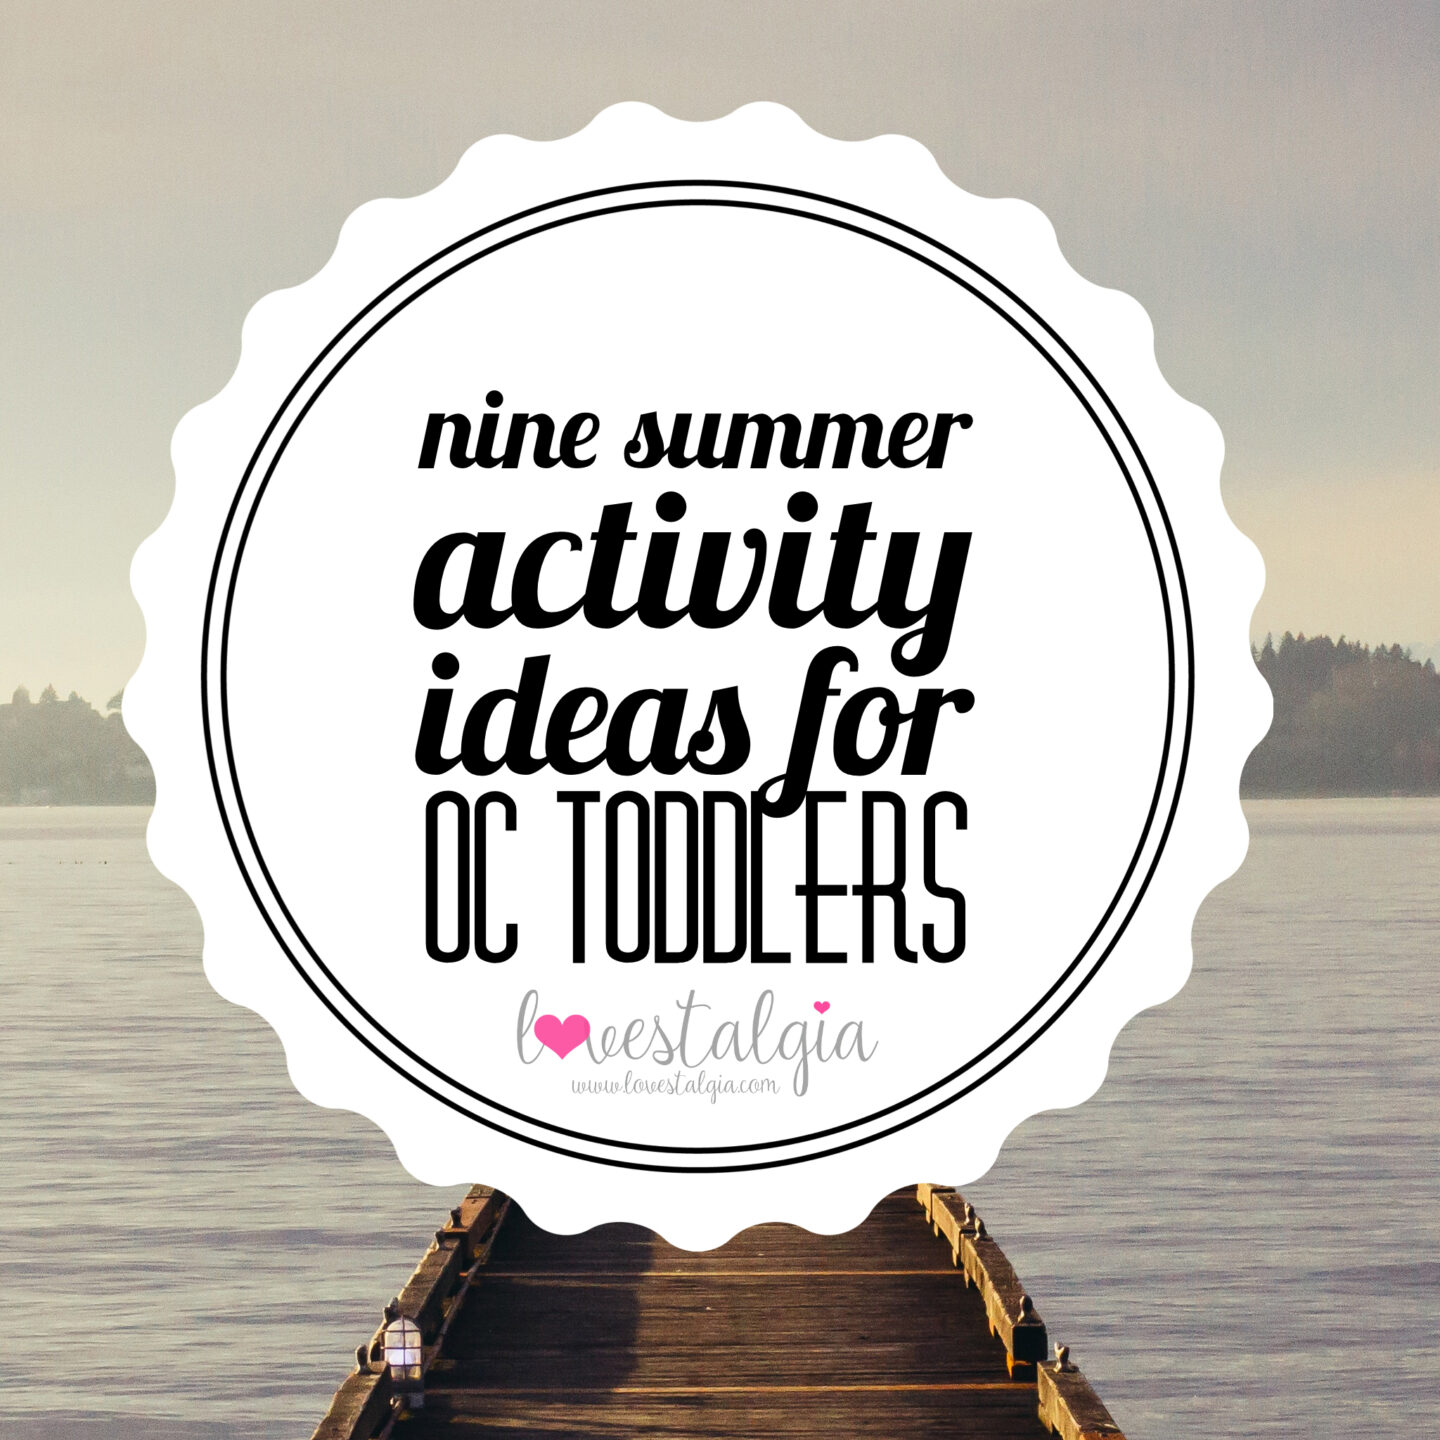 Nine Summer Activity Ideas for OC Toddlers